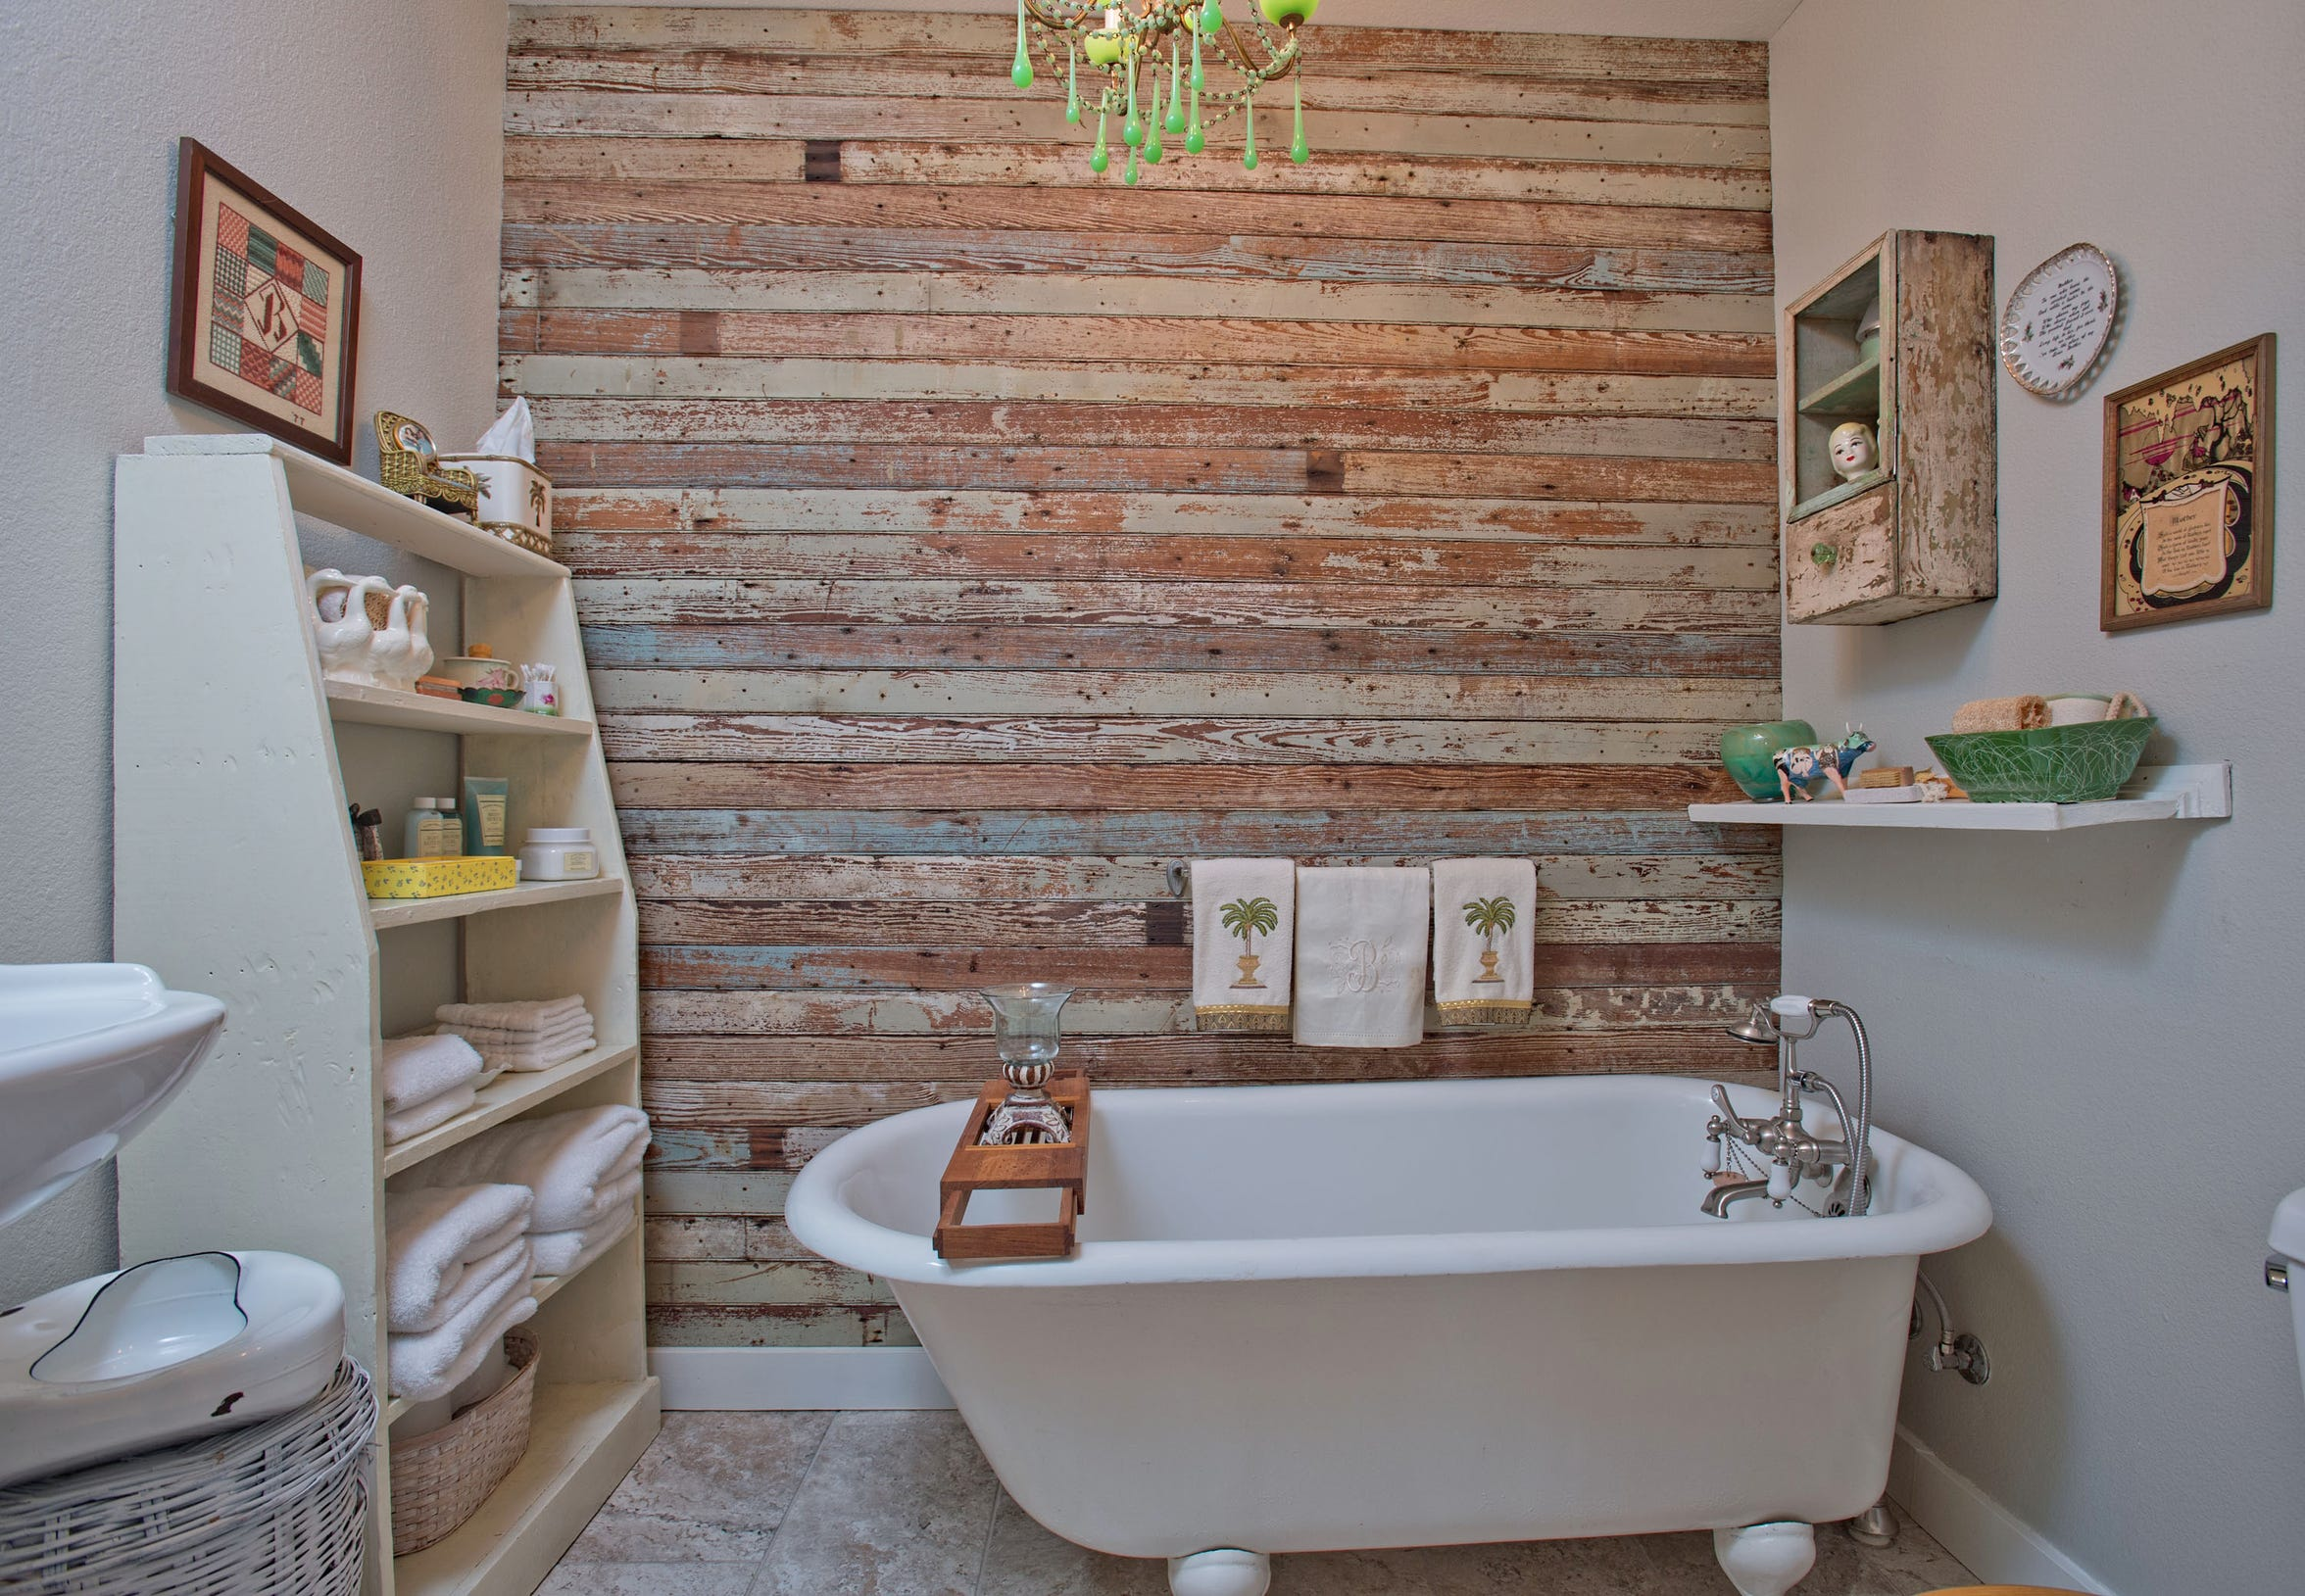 An antique tub sits among a reclaimed wood wall setting a perfect vintage vibe in the guest bath